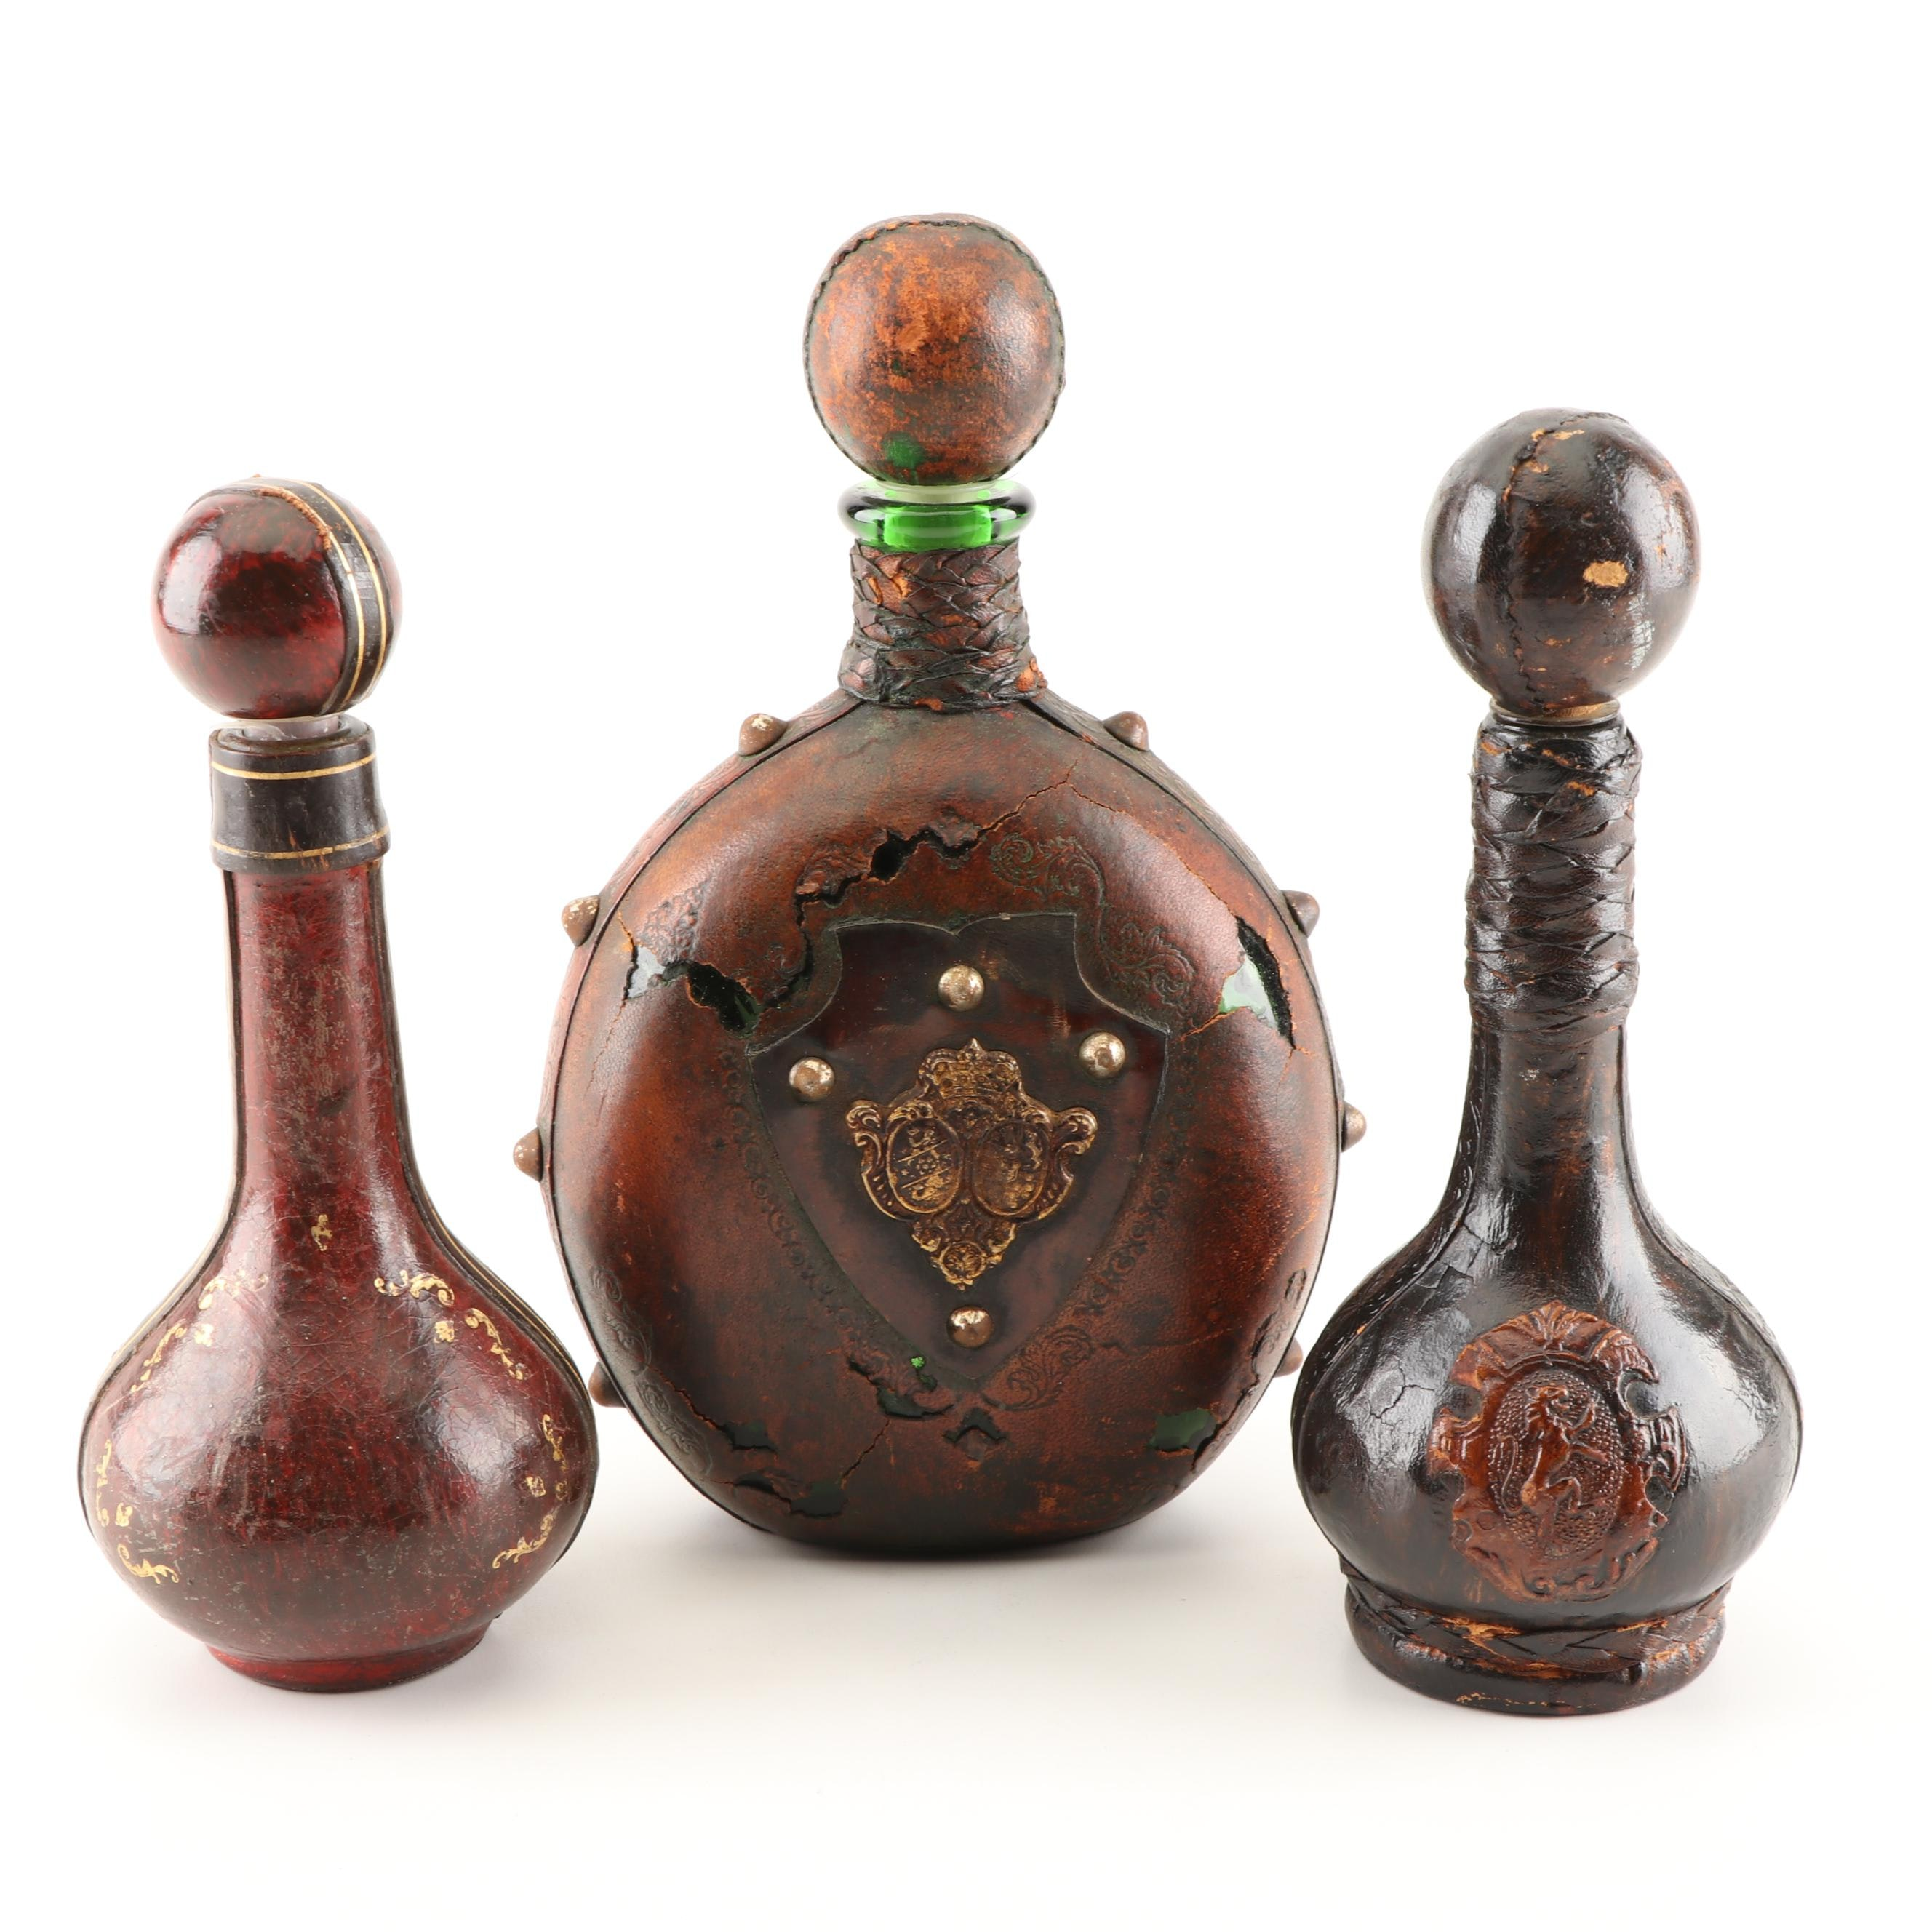 Leather-Bound and Tooled Italian Decanters